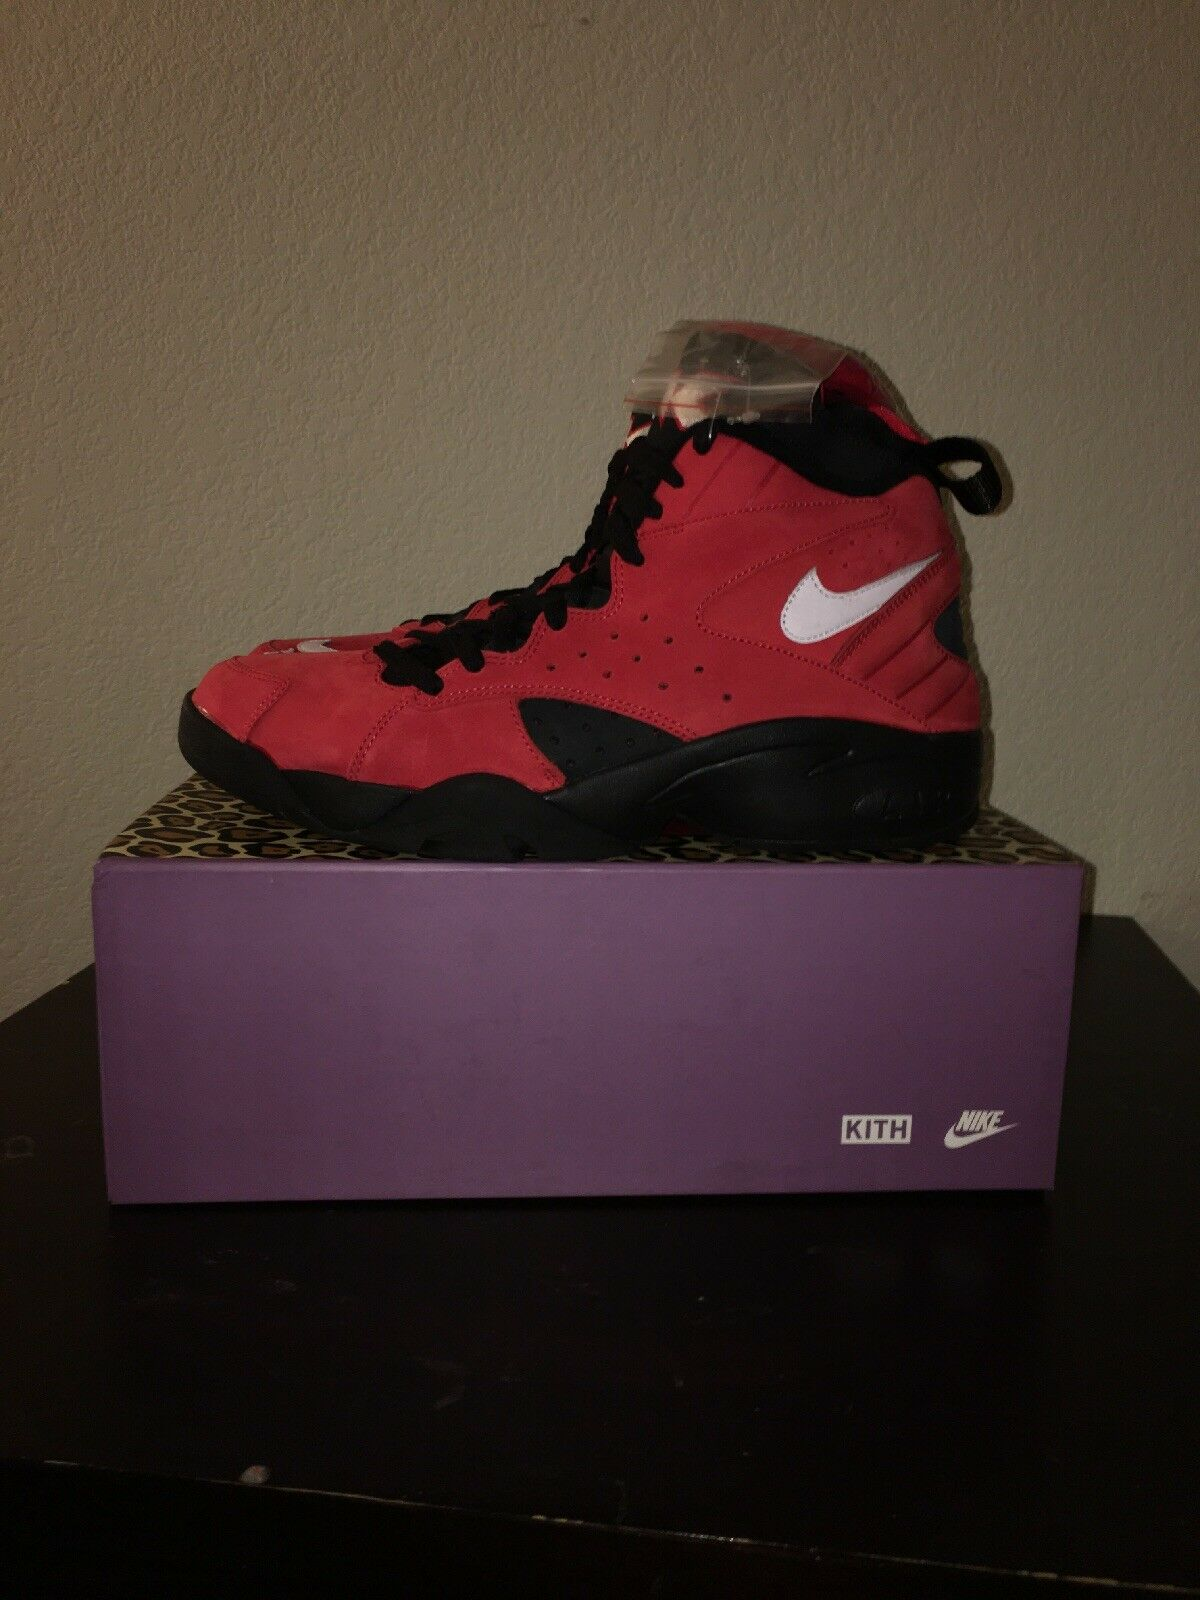 Kith x Nike Air Maestro II High Red Nero Take Flight Size 10.5 New